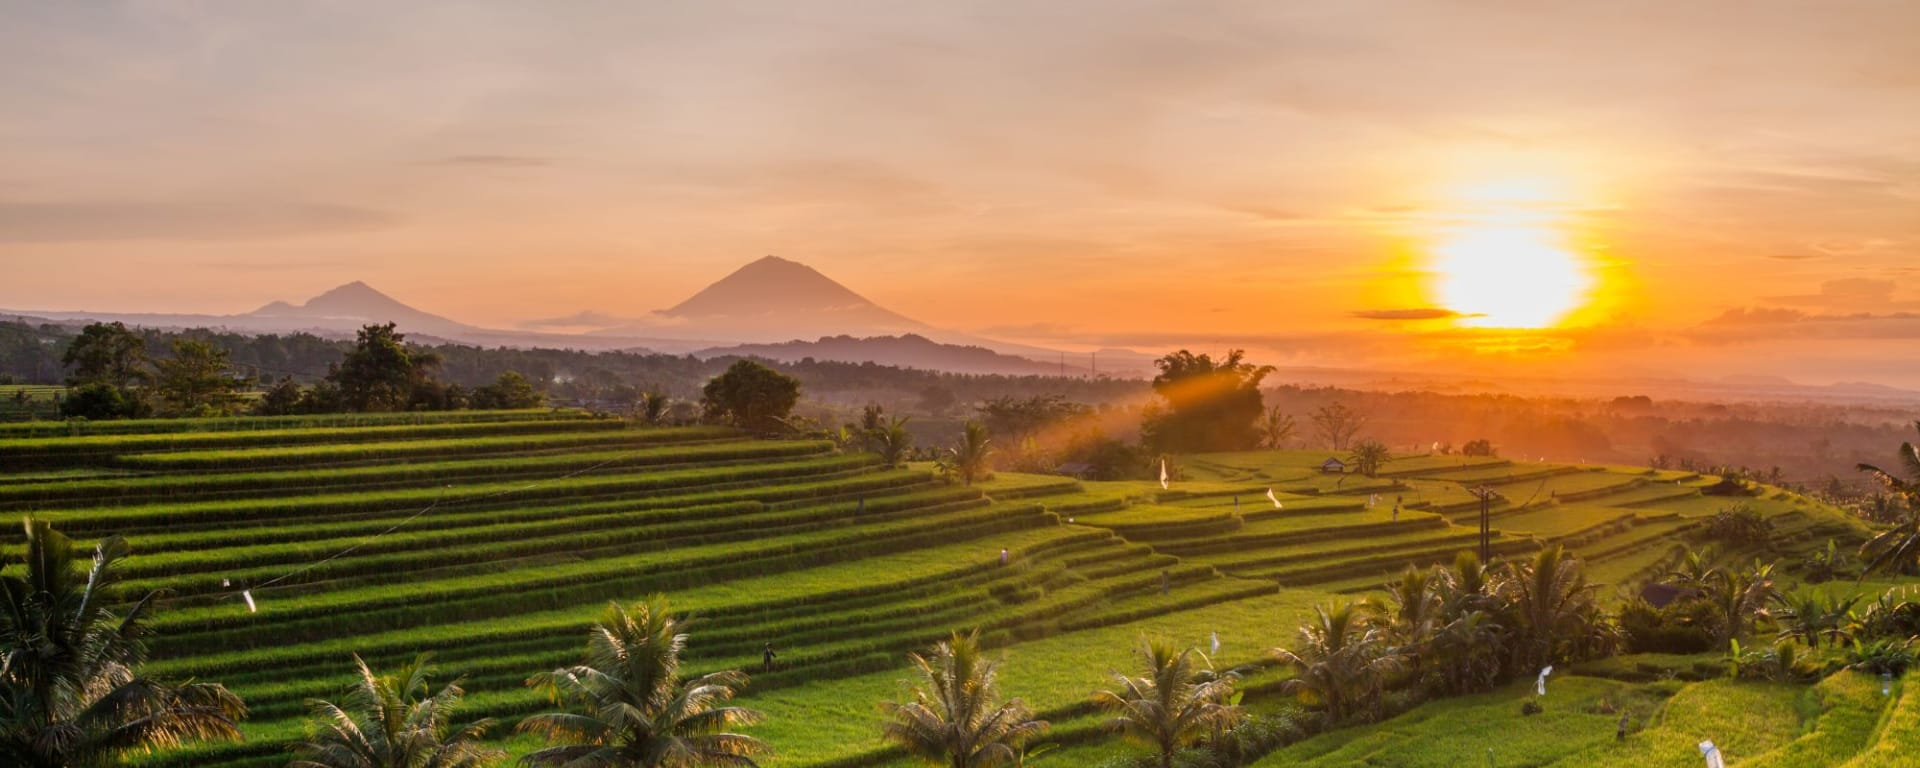 Bali Kompakt ab Südbali: Rice terraces at sunrise in Bali